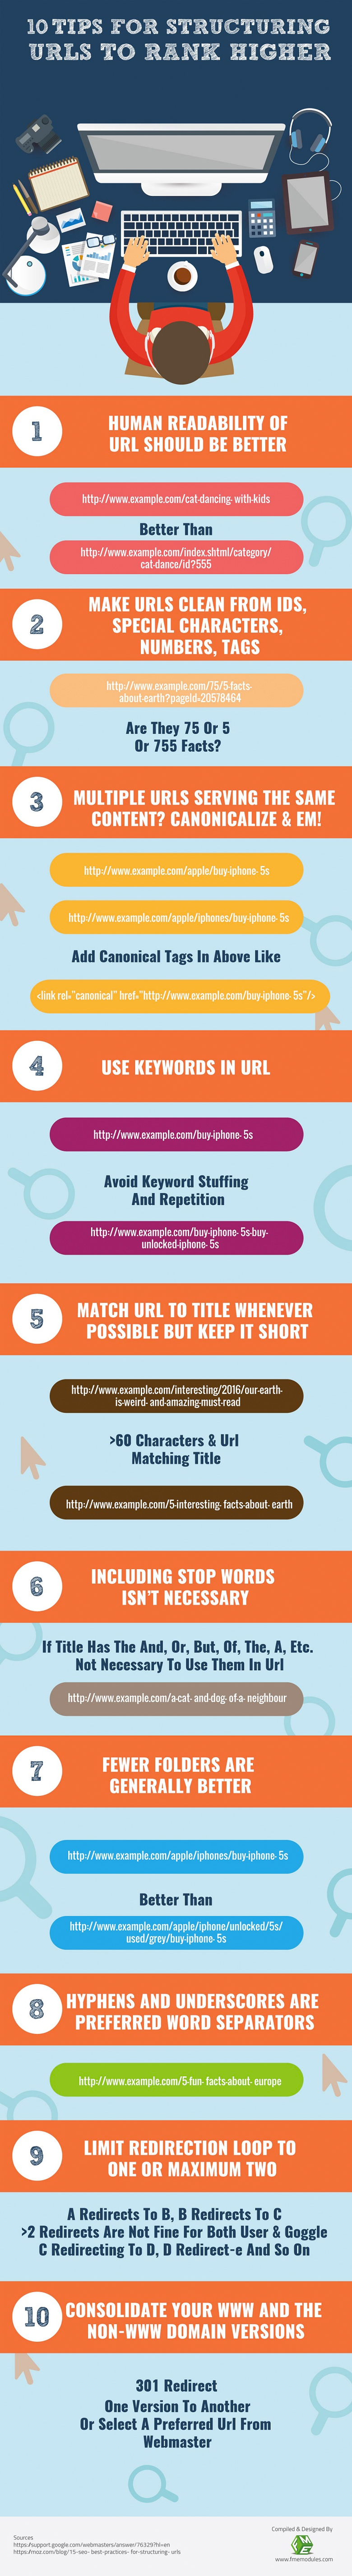 how-to-structure-url-rank-higher-seo-tips-infographic